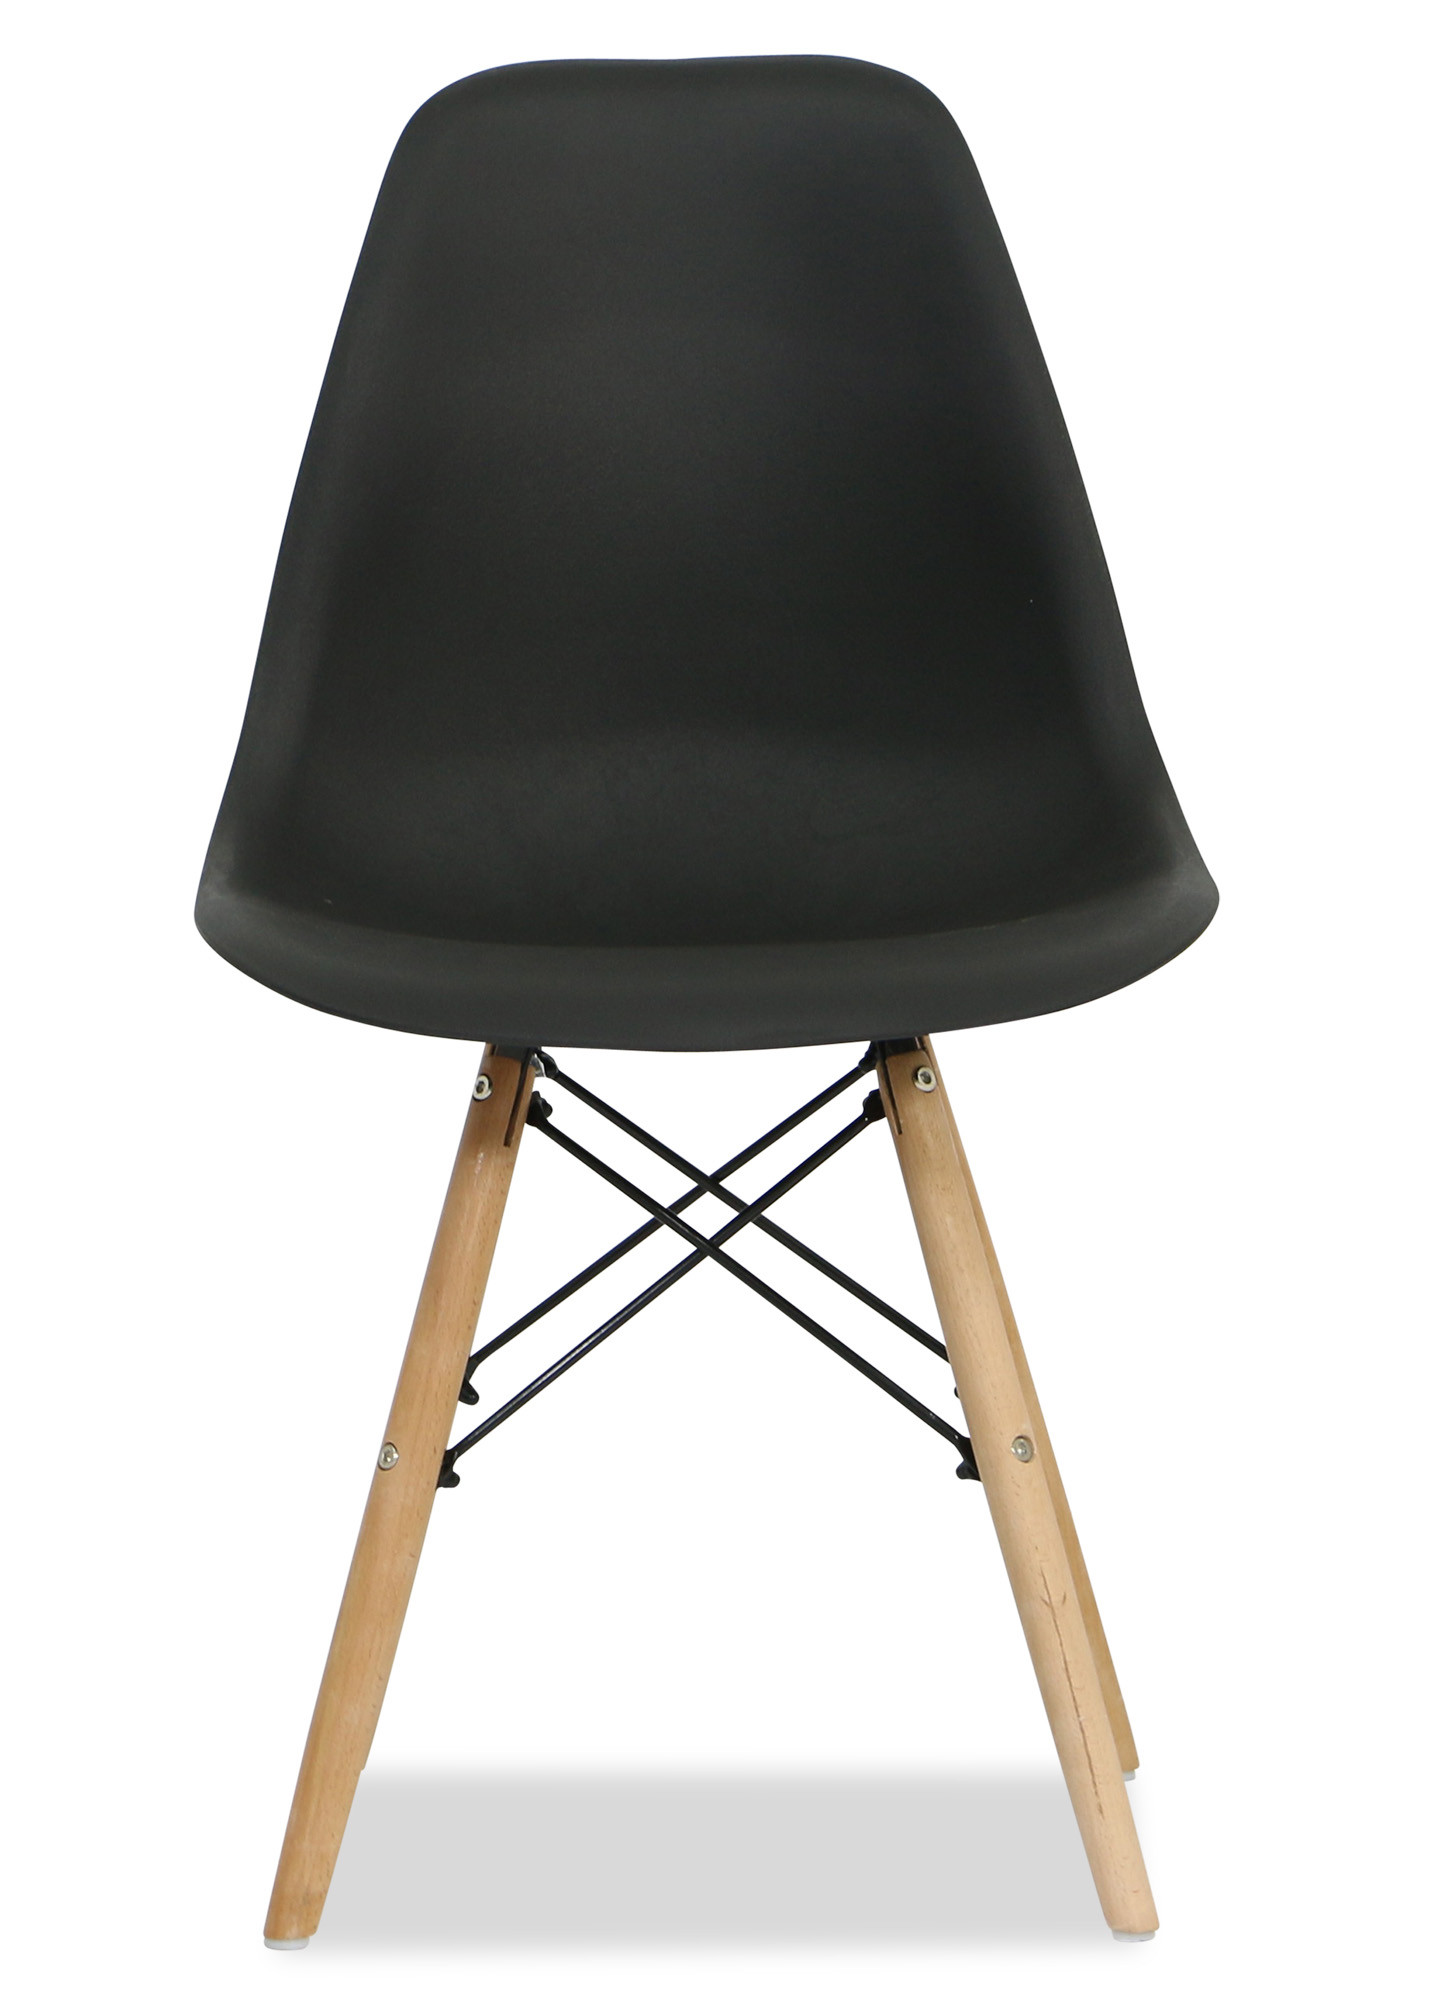 Farmhouse Dining Room Chairs Eames Black Replica Designer Chair Dining Chairs